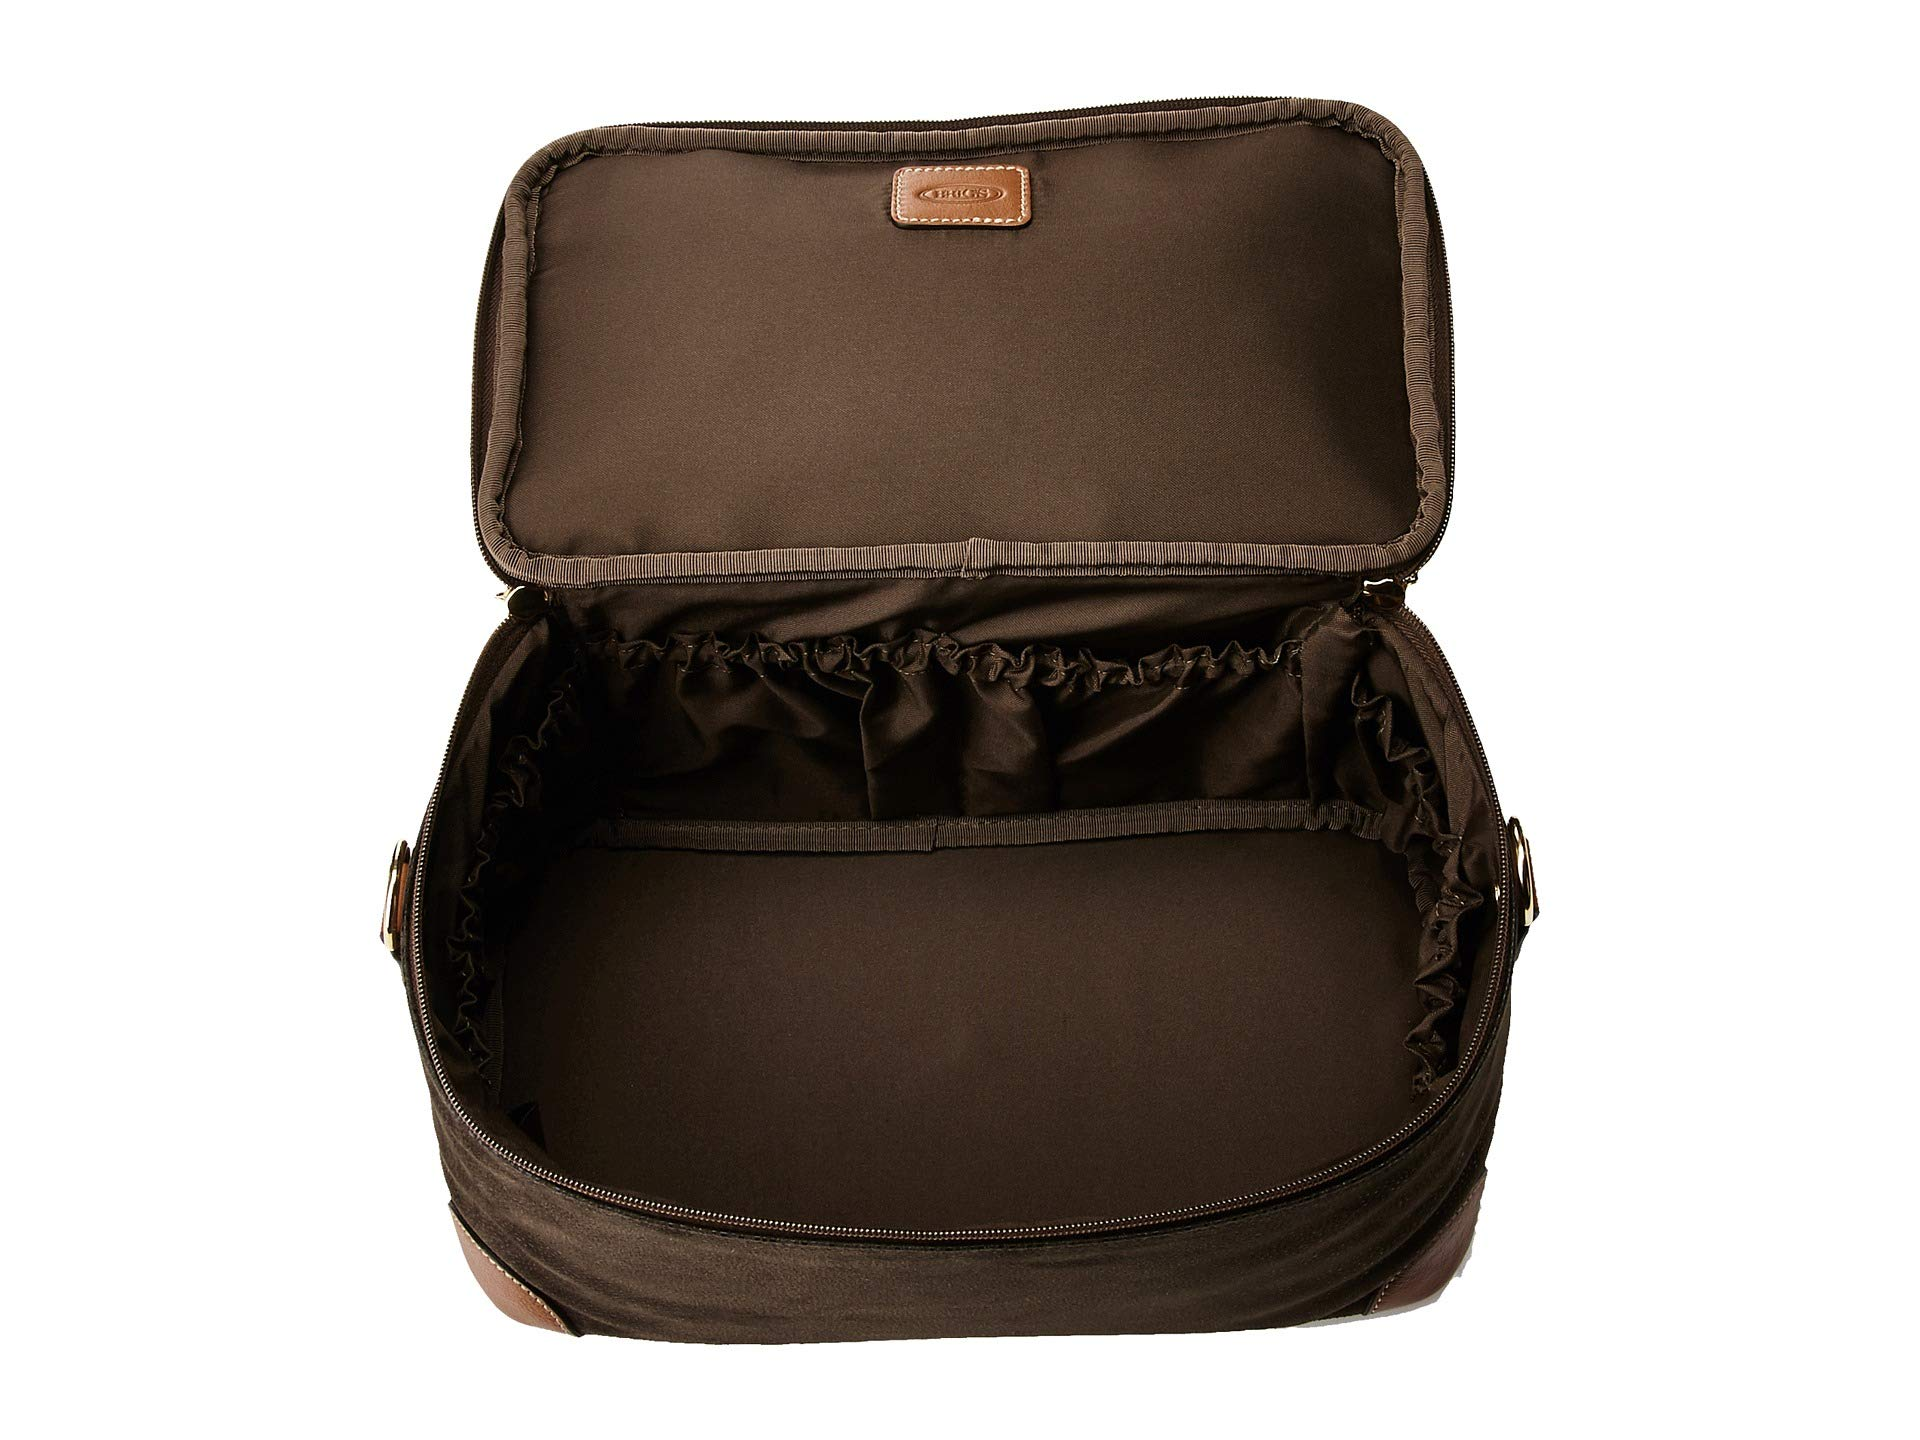 Tuscan Olive Case Bric's Milano Train Life 7HwqxP4A